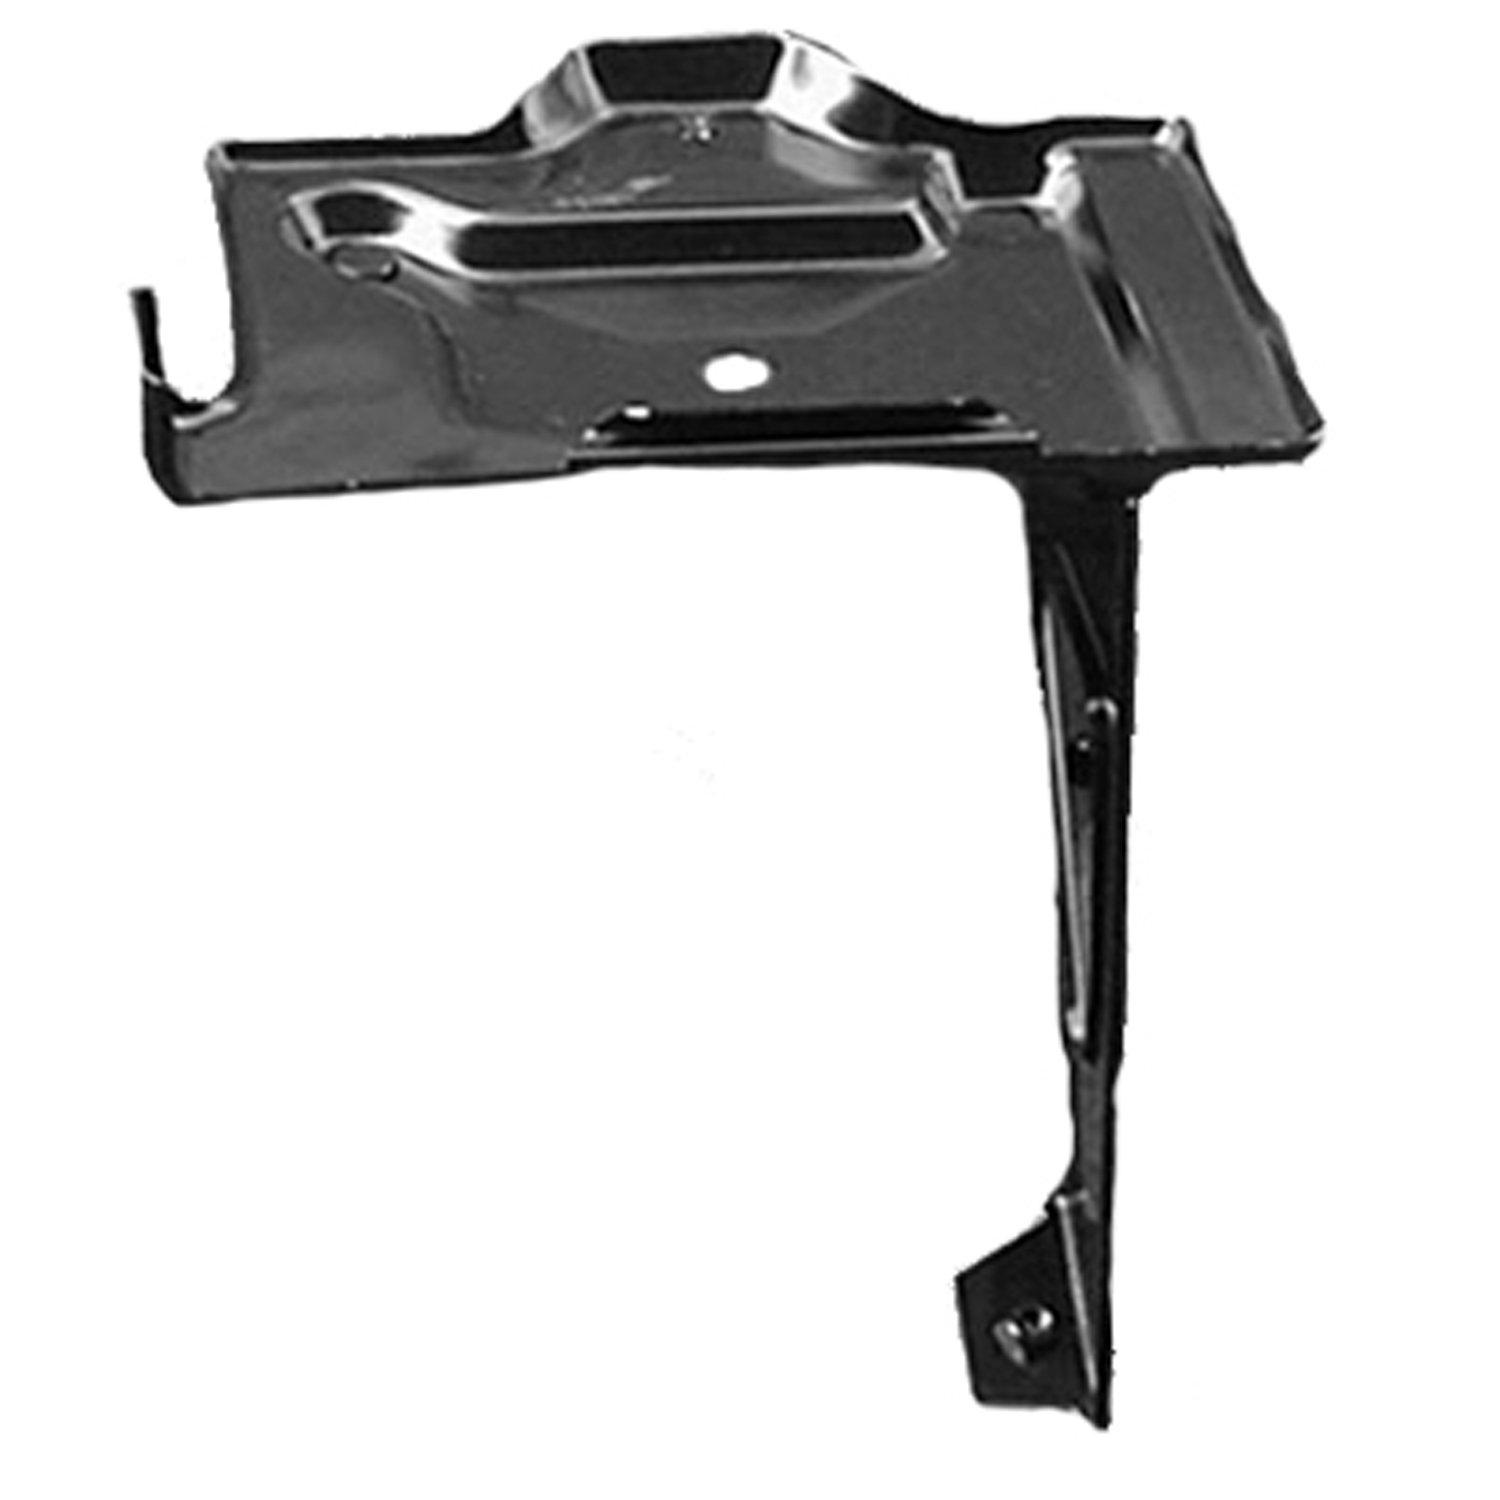 CPP Battery Tray for Cadillac Escalade, Chevy Blazer, Pickup, Suburban, Tahoe by CPP